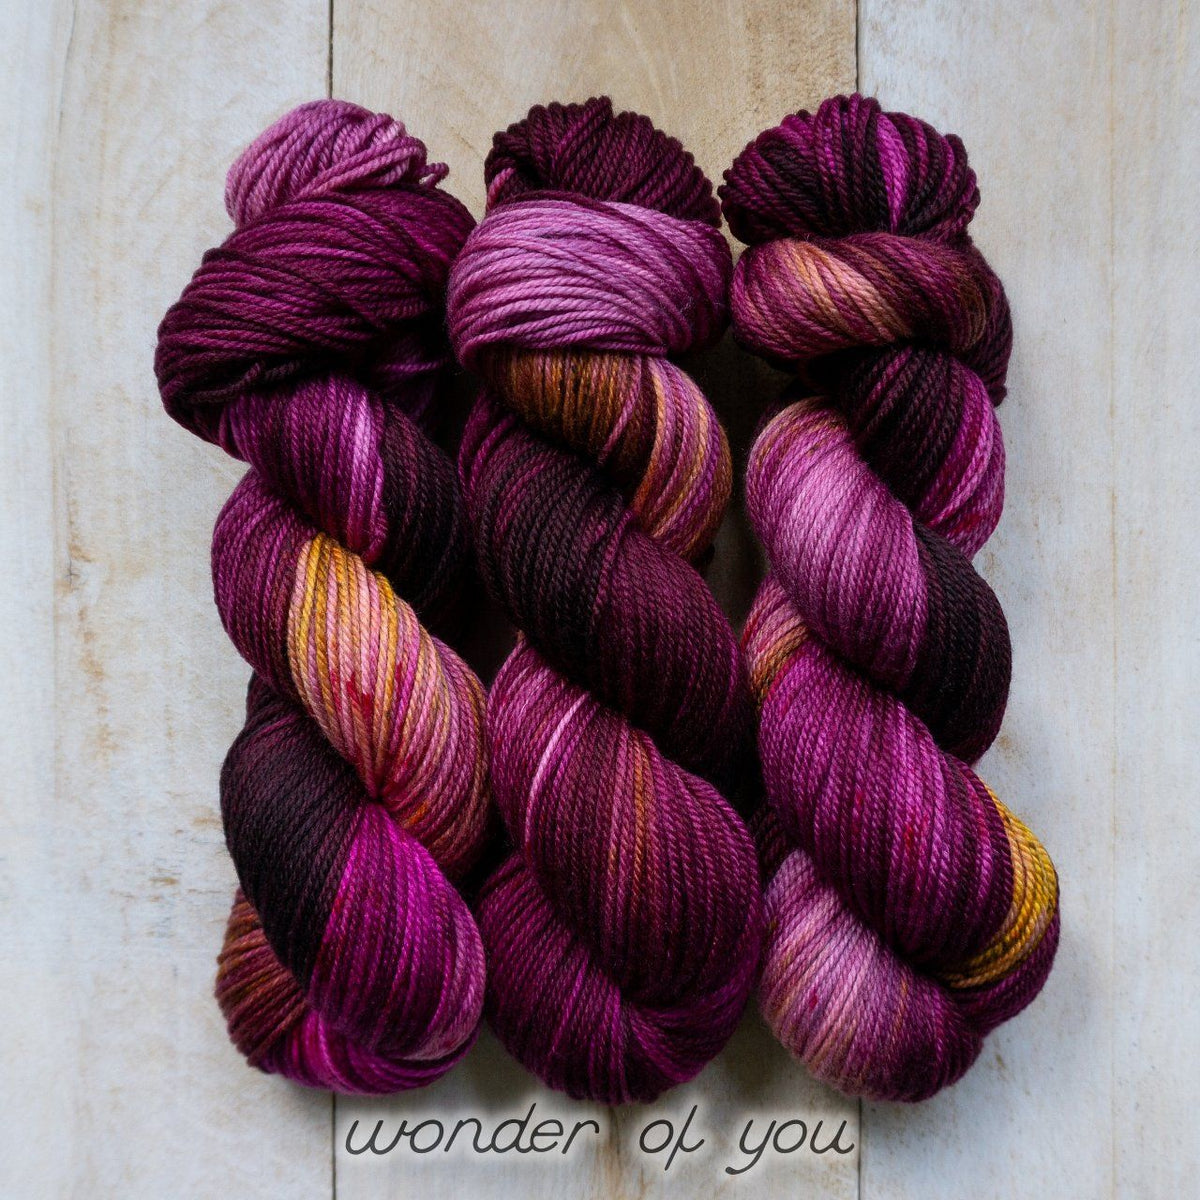 WONDER OF YOU by Louise Robert Design | DK PURE hand-dyed Variegated + Speckled yarn